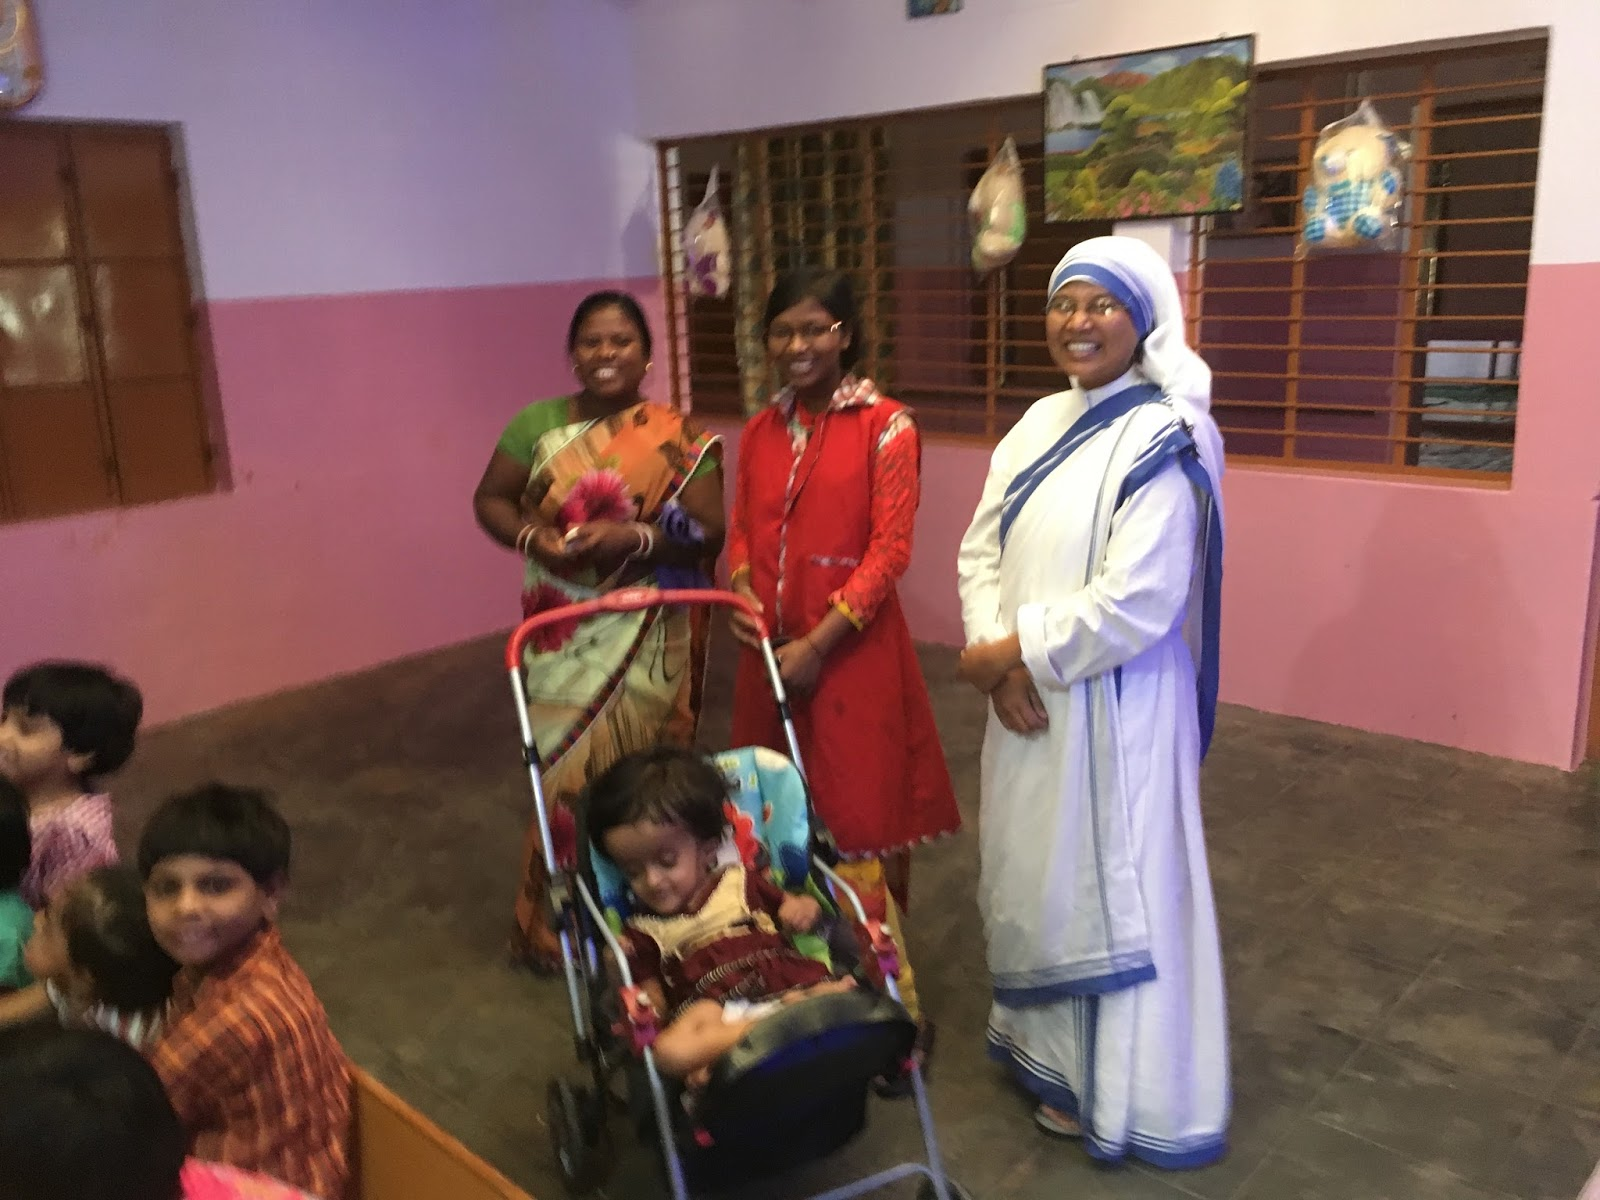 BROTHER MICHAEL CAPUCHIN INDIA: Mother Teresa Sishu Bhavan